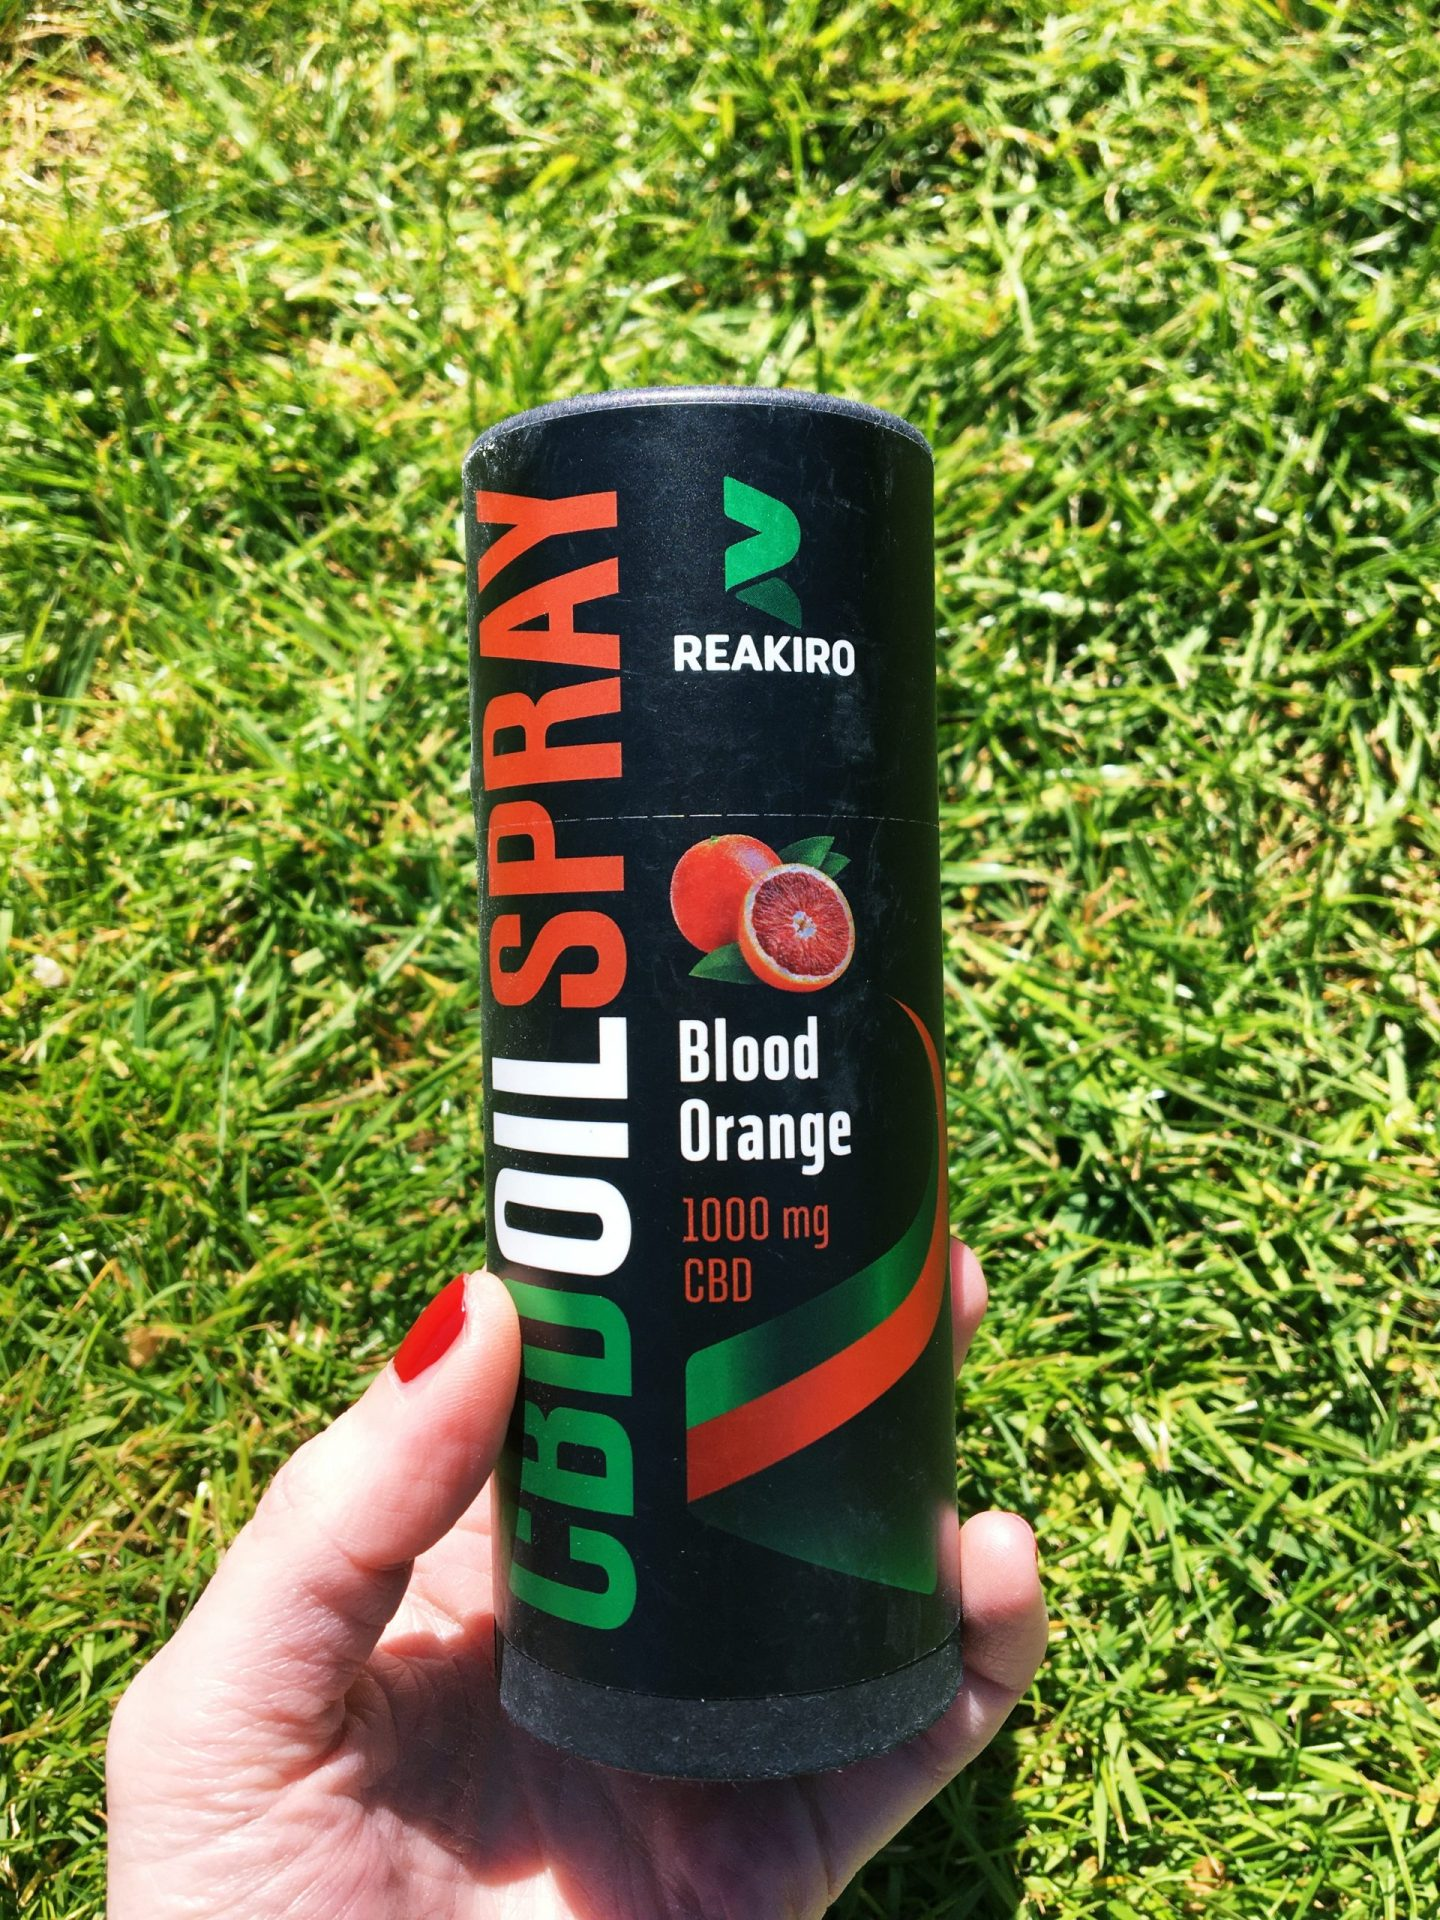 Me holding the oil spray. It's black and cylindrical, looking like a can of pop, with green, white and red designs for the text.